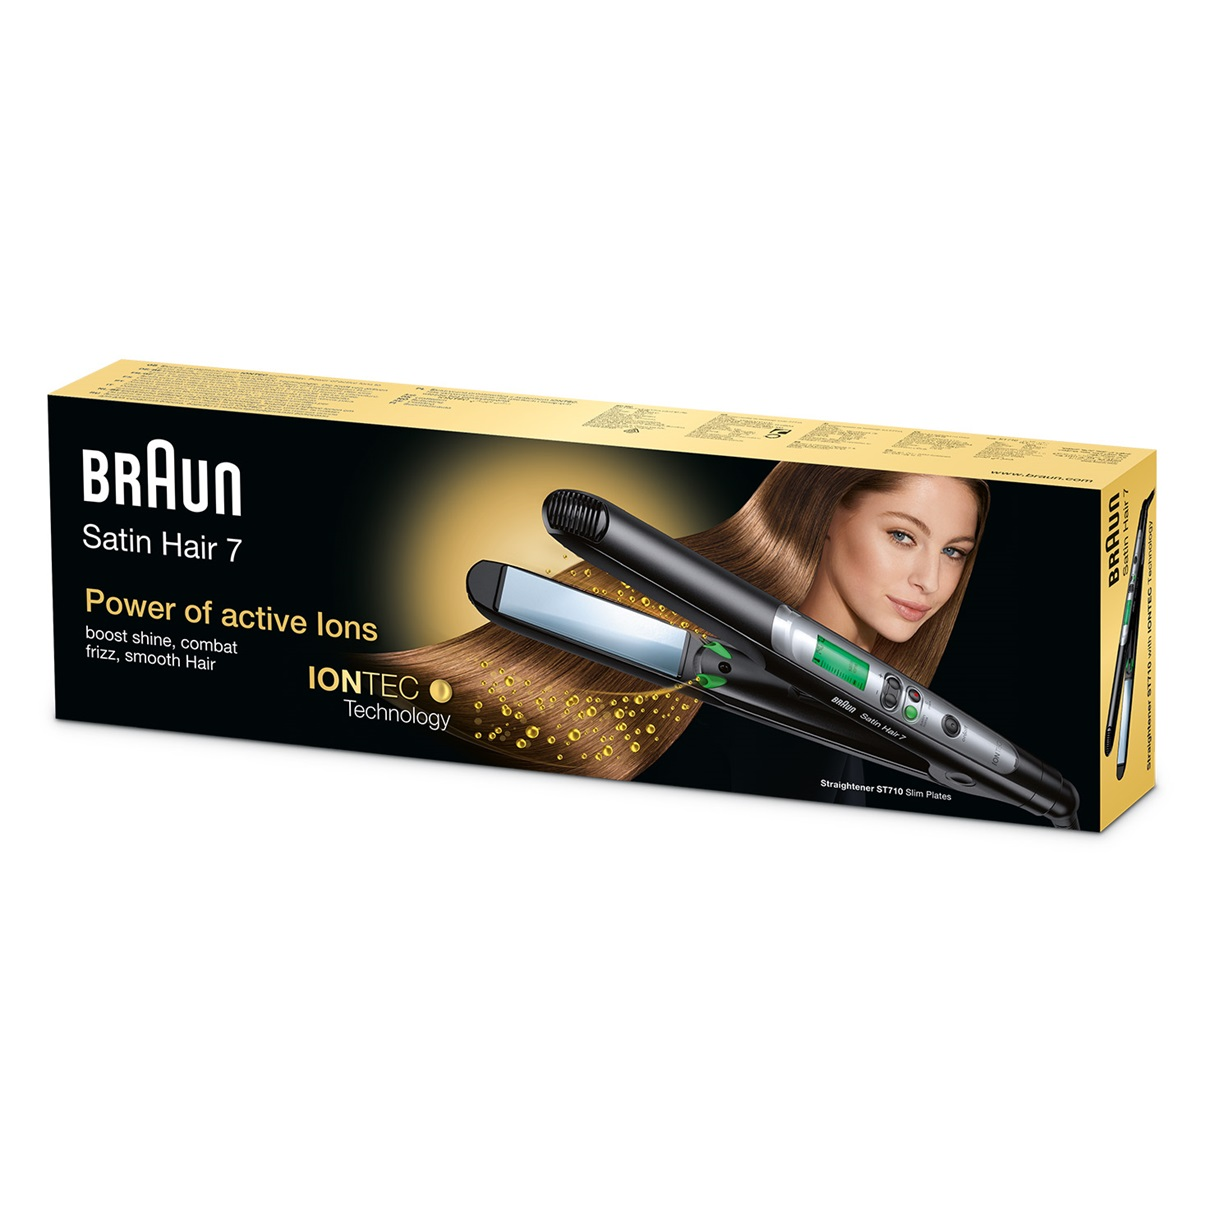 Braun Satin Hair 7 IONTEC straightener ST710 - packaging